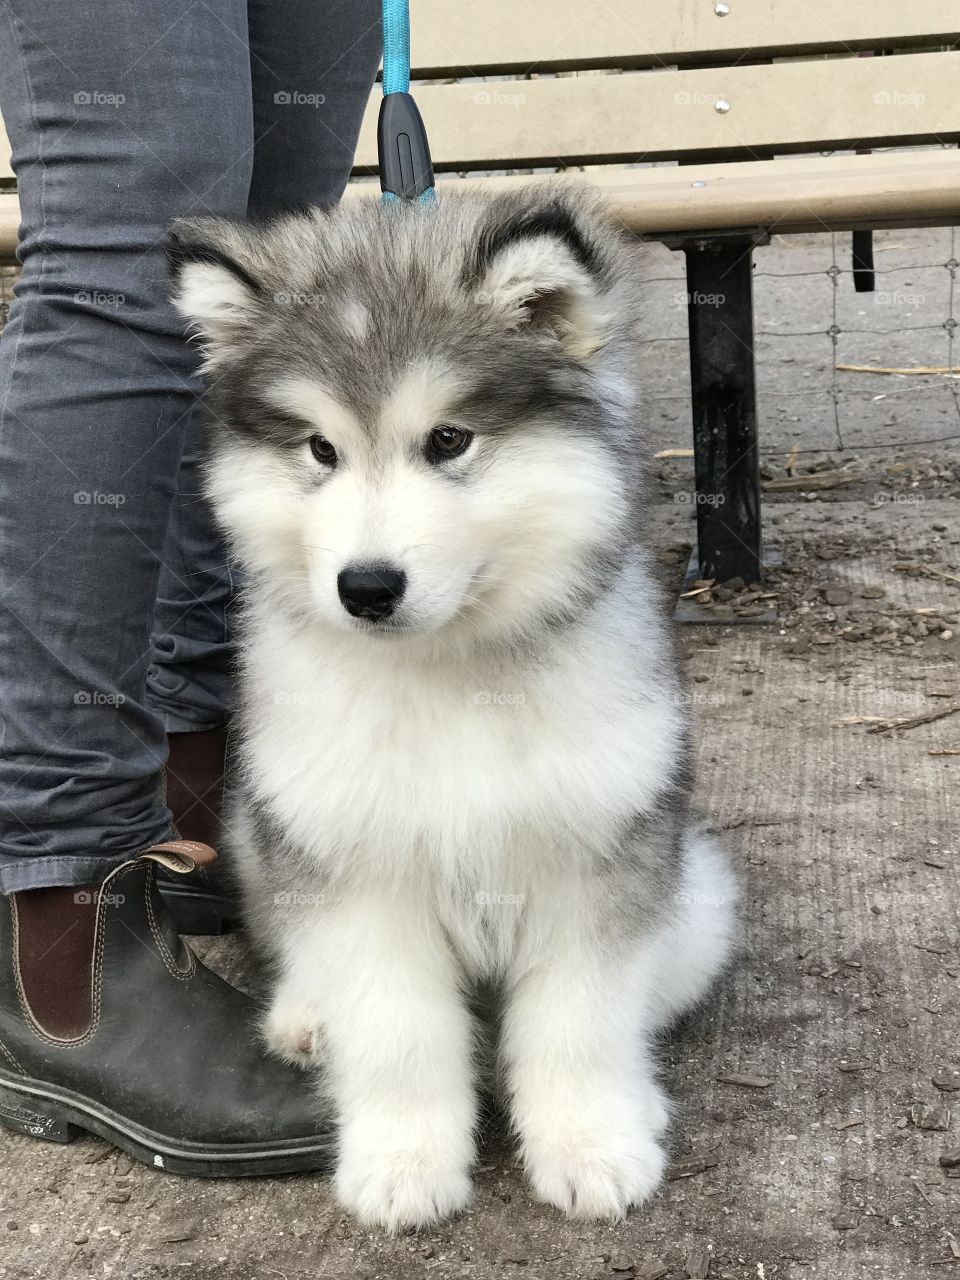 Can we talk about how cute this malamute is!? I saw him at the dog park and thought he was so cute.